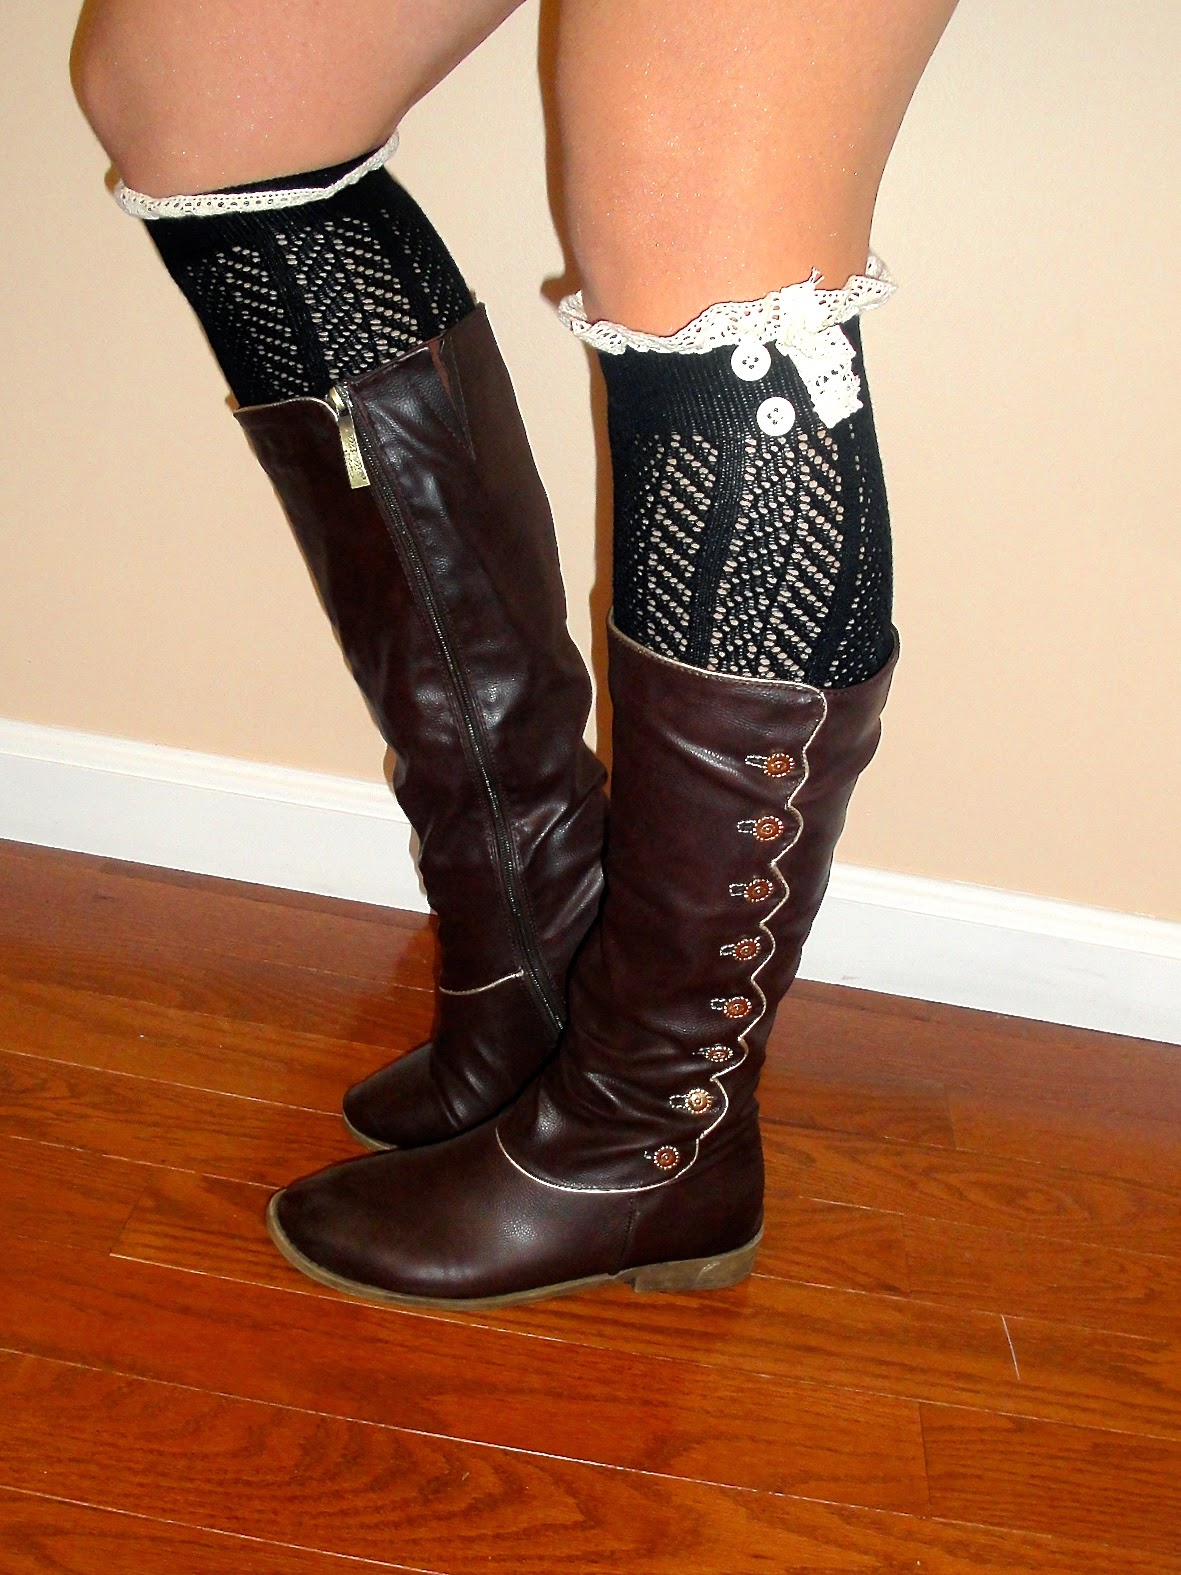 boot socks, lace boot socks, button up boots, brown button up boots,